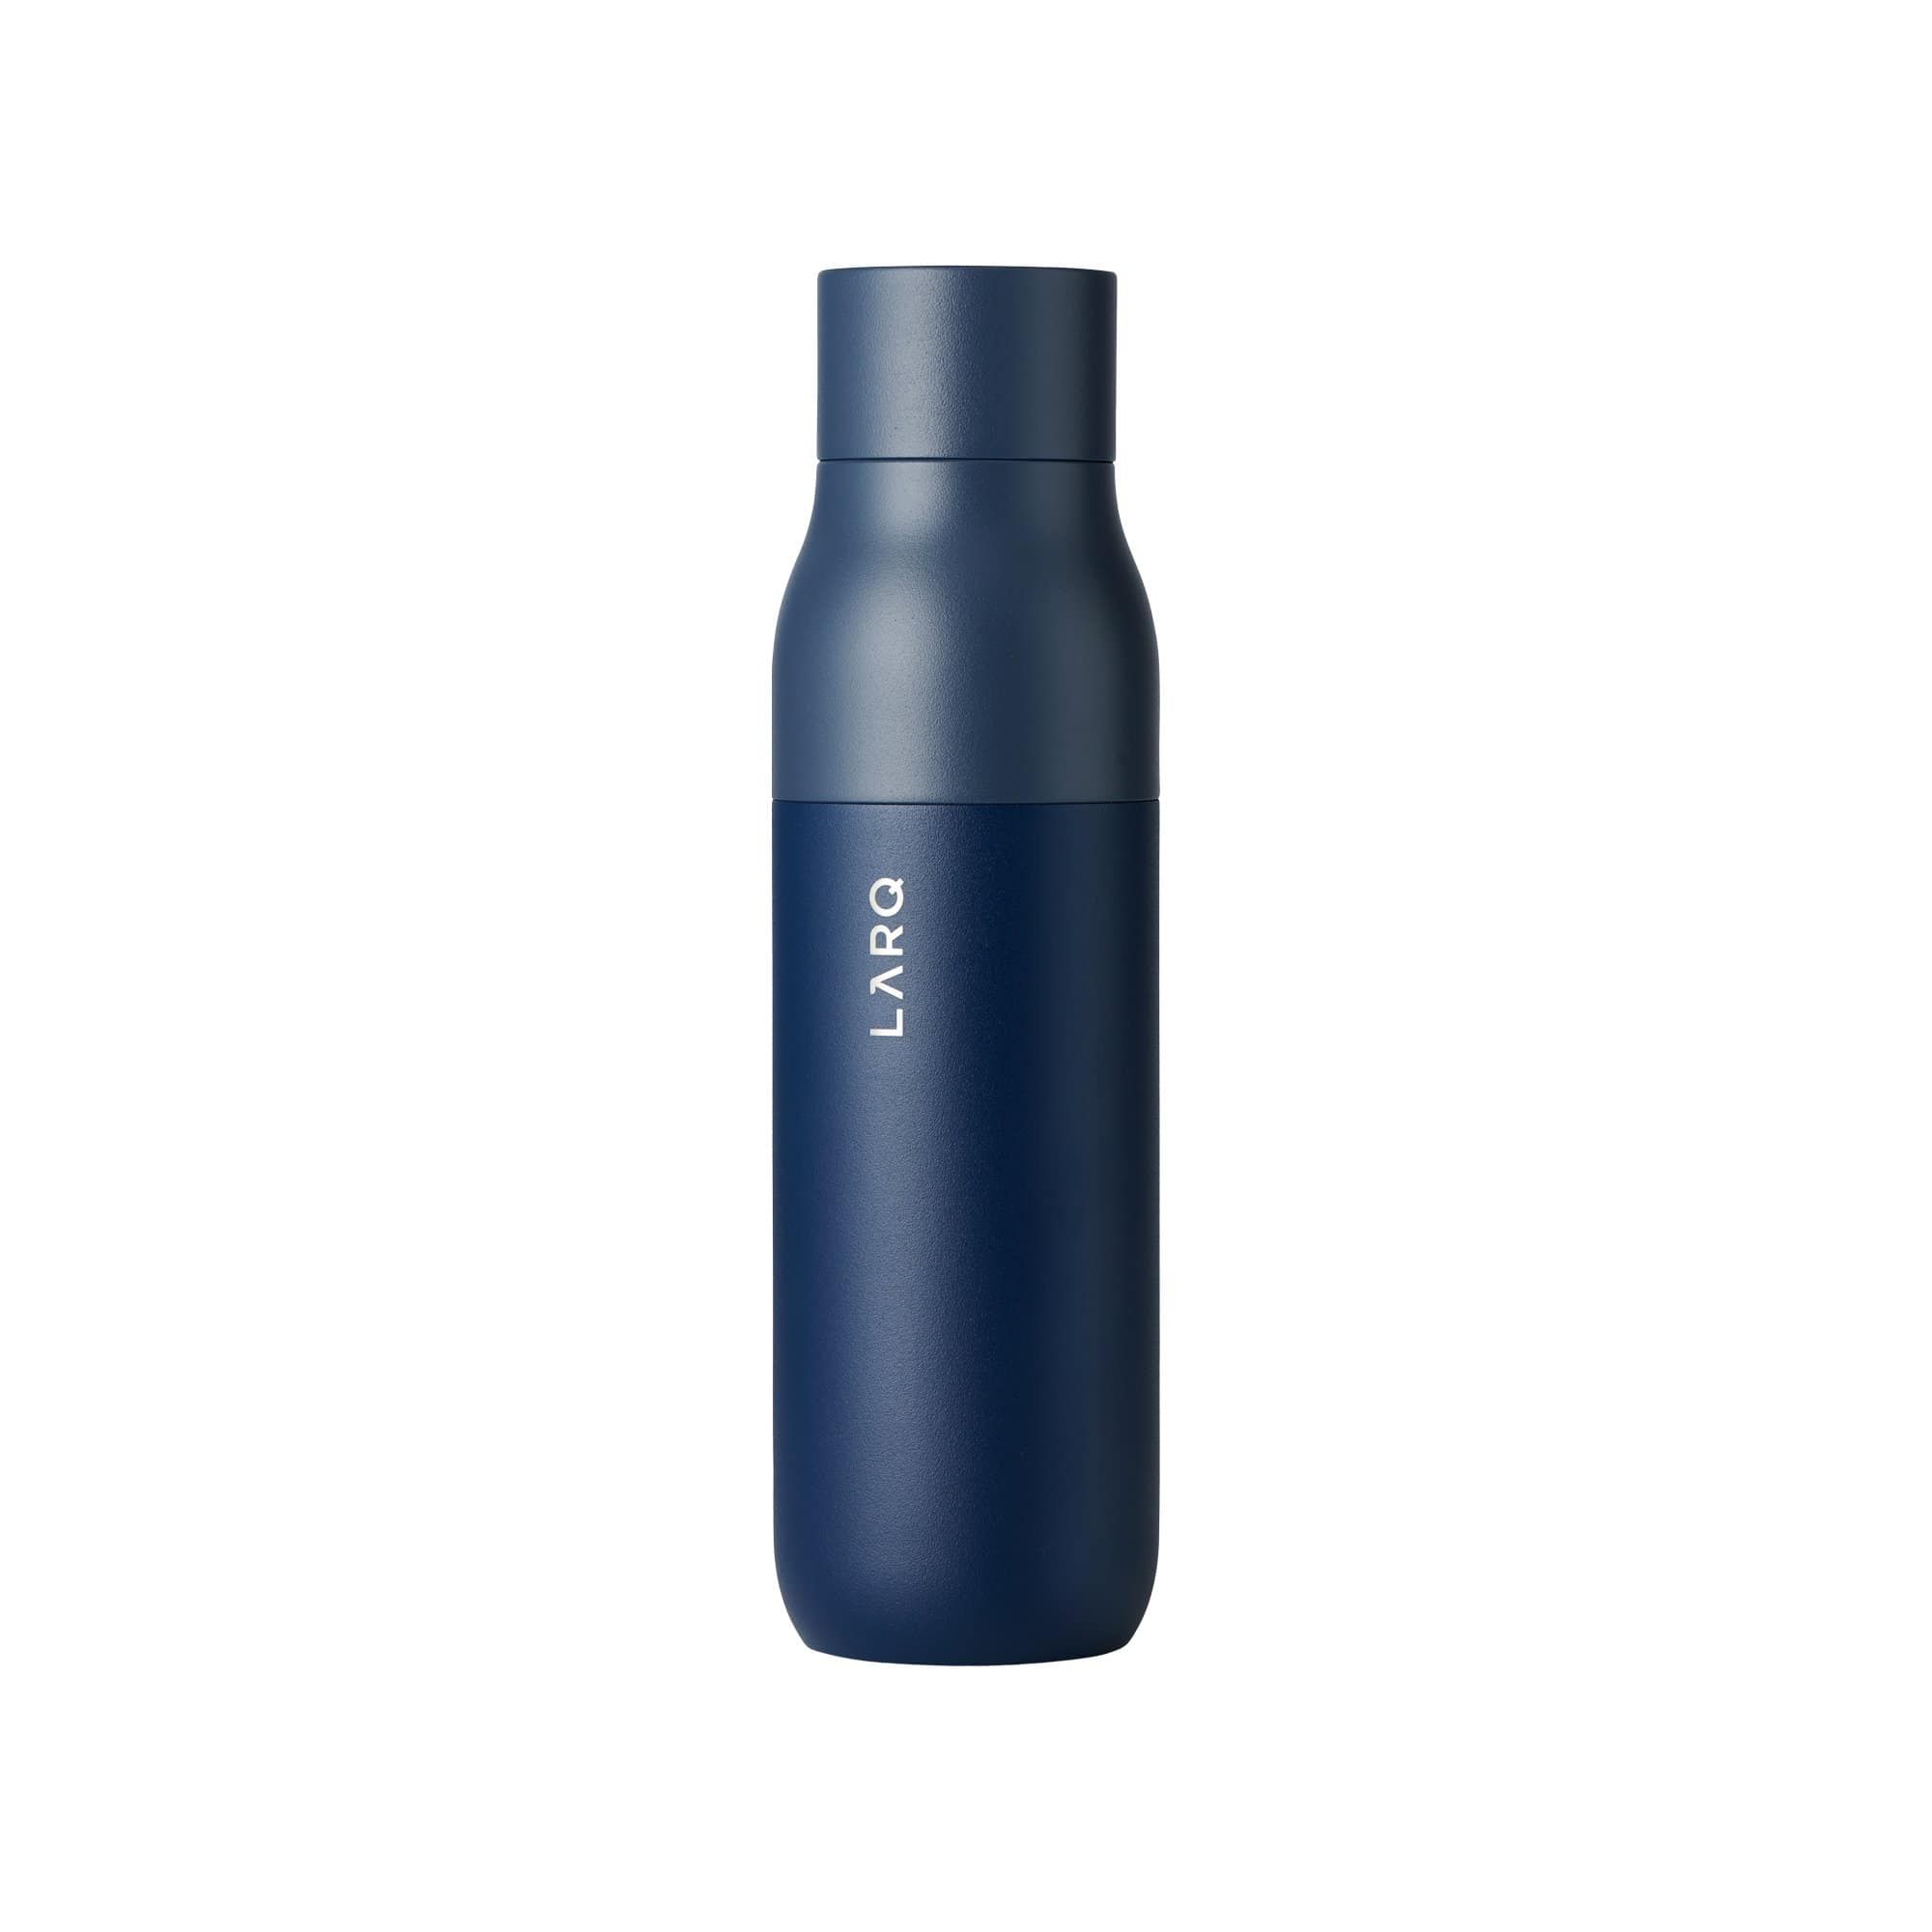 LARQ Water Bottles Monaco Blue Bottle